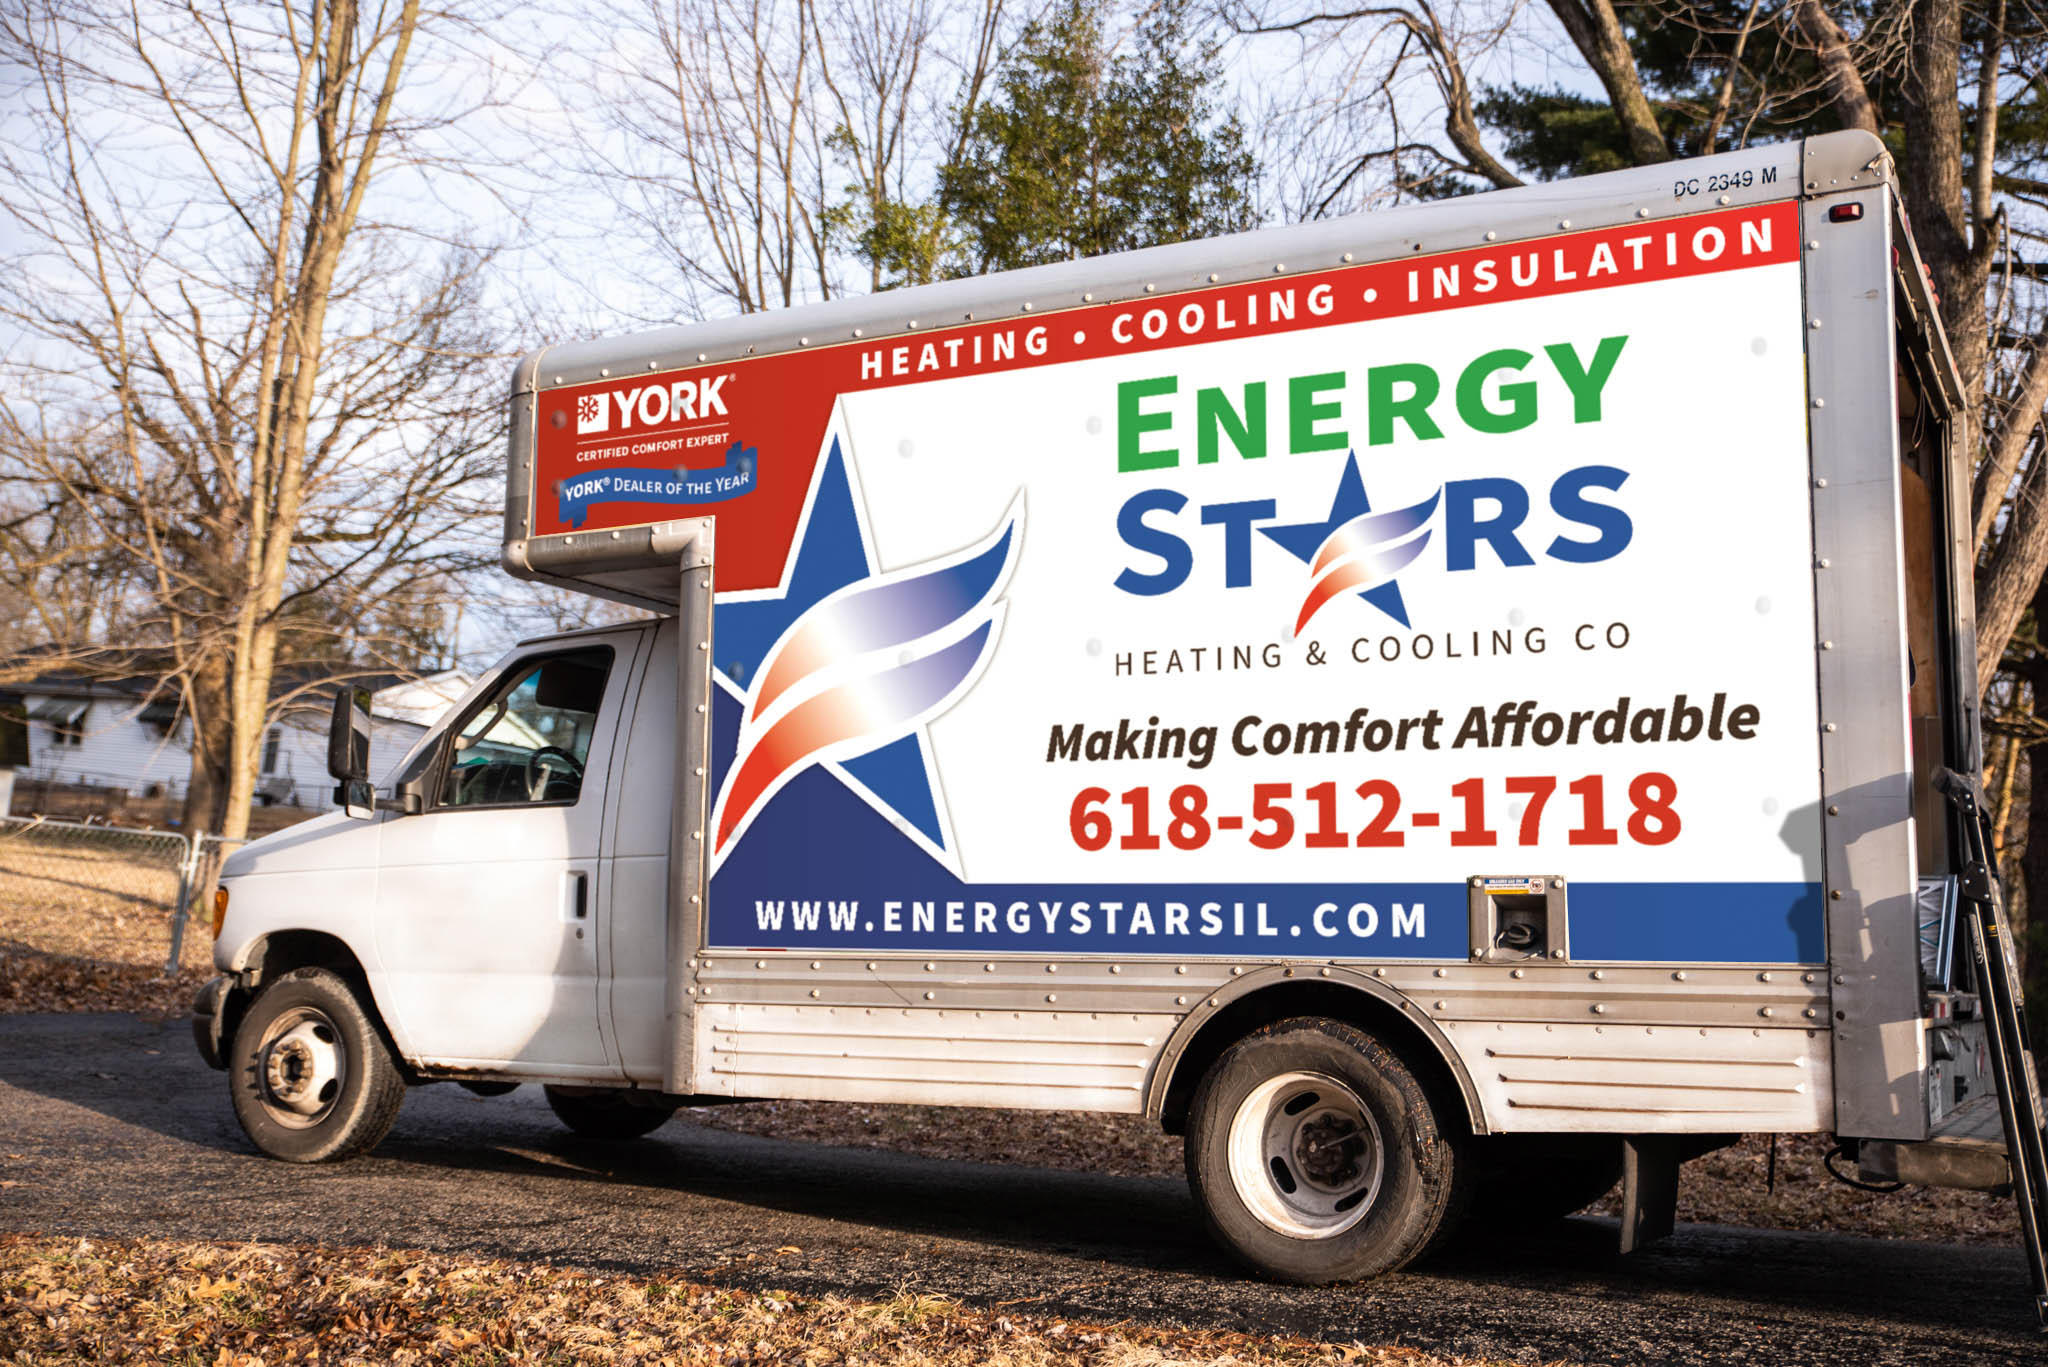 Energy Stars Heating & Cooling Co